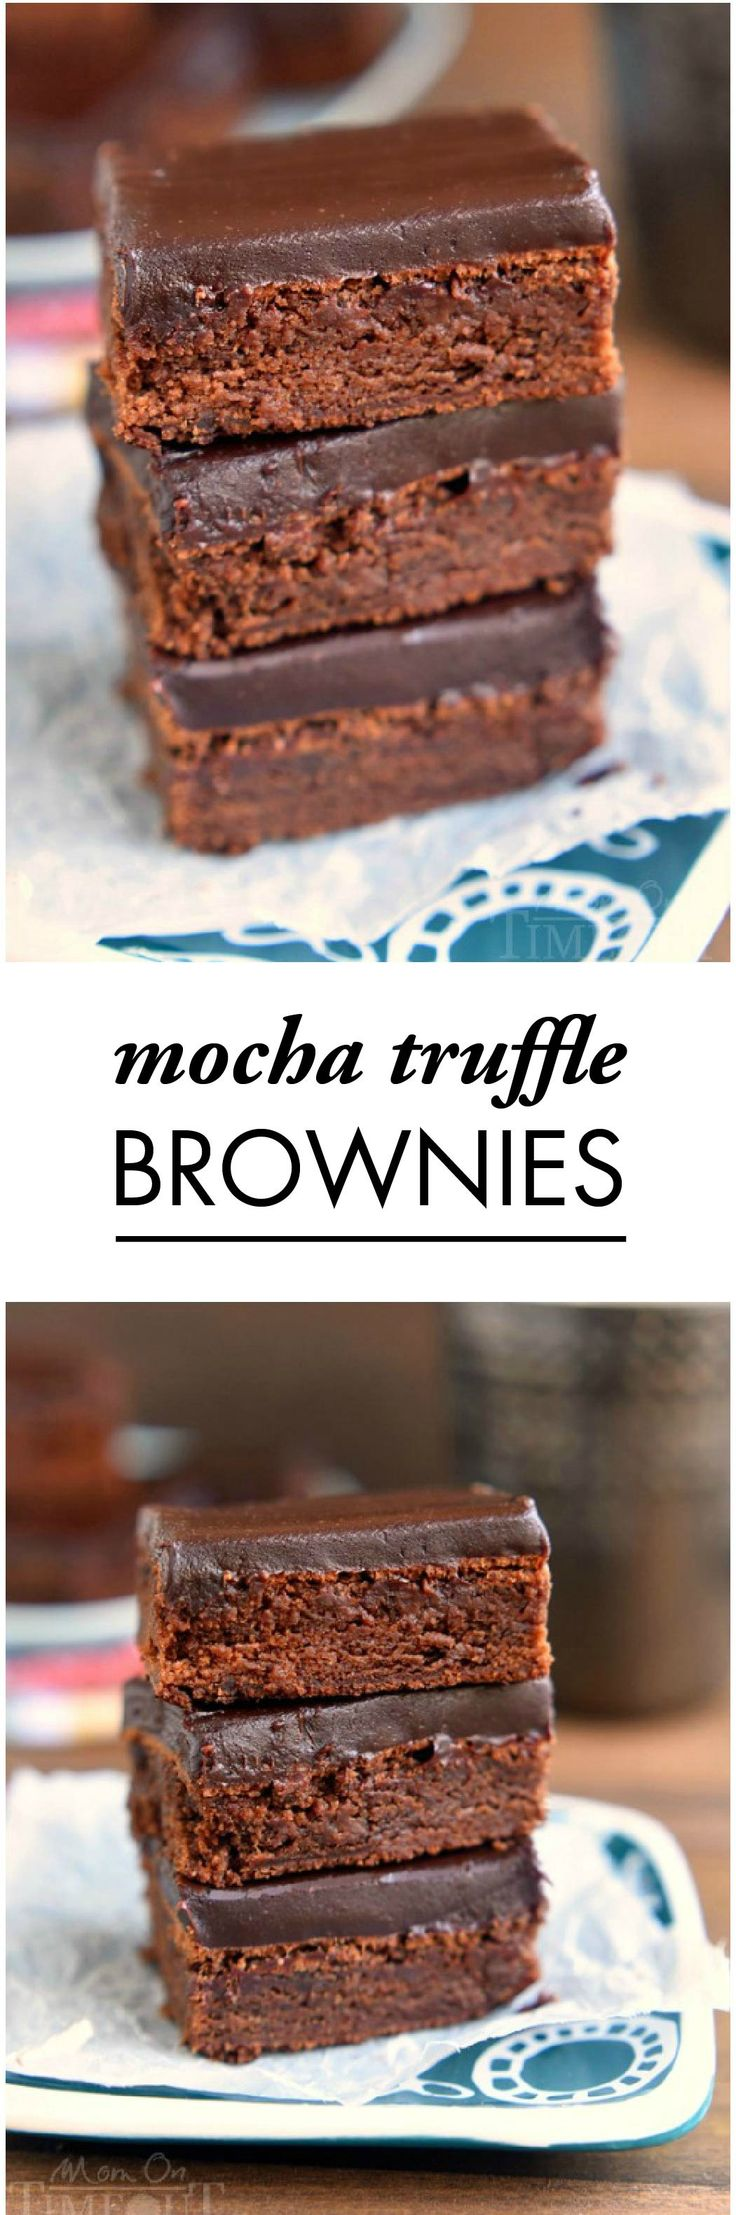 Are you and your friends craving chocolate? These decadent Mocha Truffle Brownies will hit the spot at your next girlfriend get-together. This dessert is baked to perfection and topped with a decadent (Homemade Chocolate Ganache)